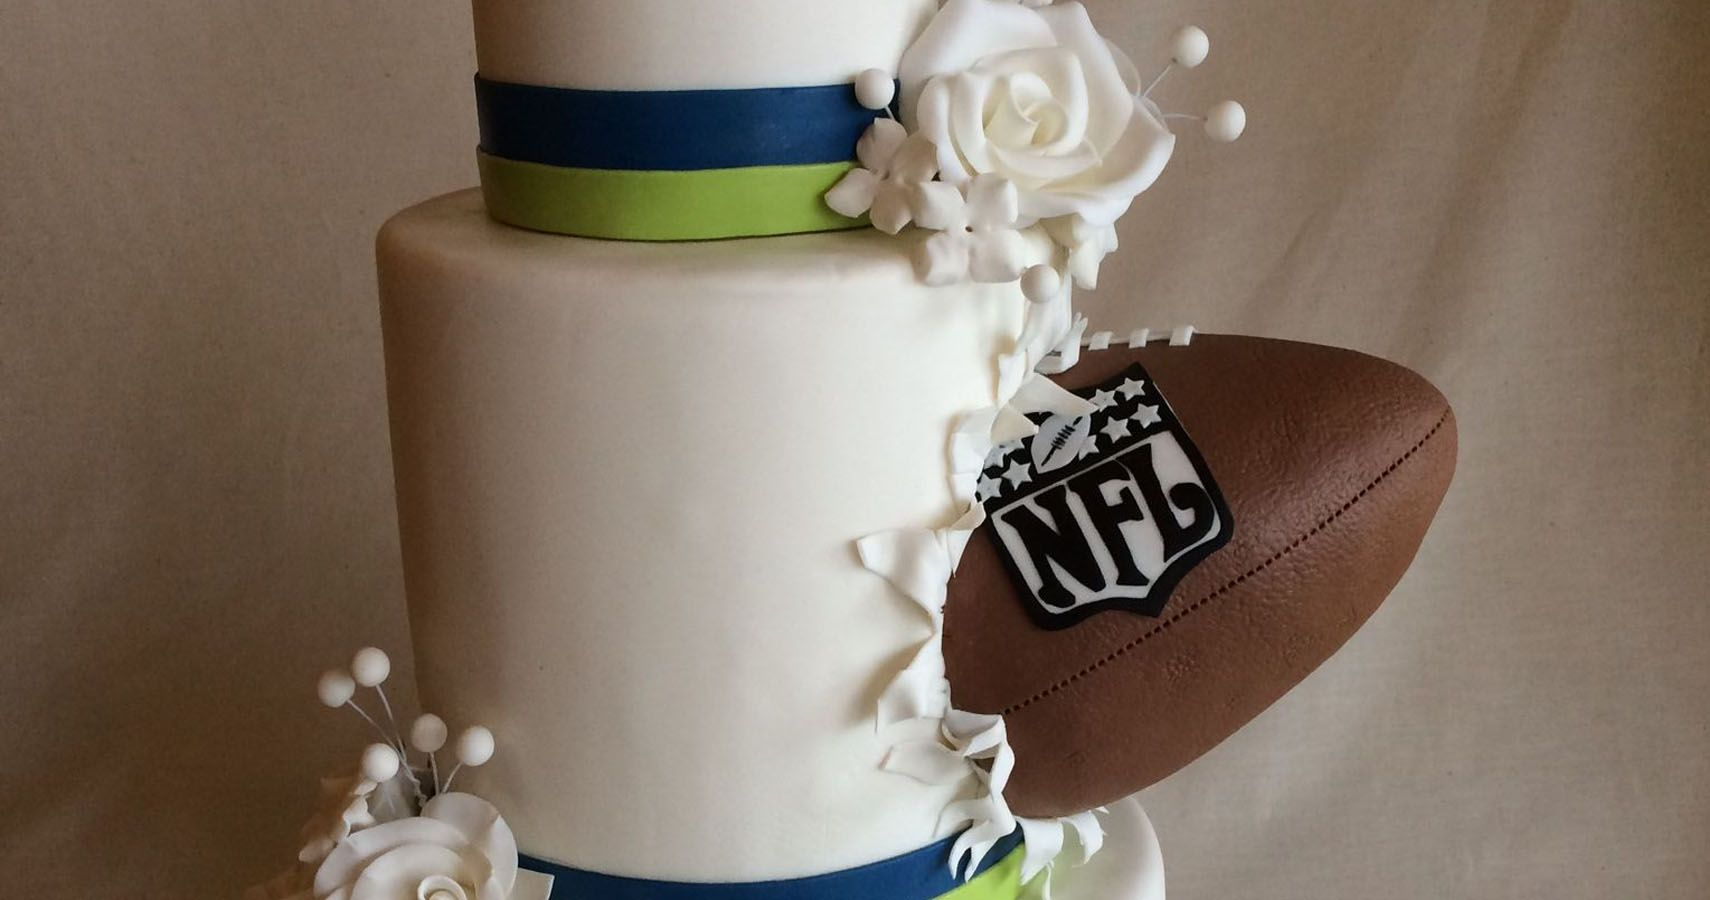 Bride Pranks Groom On Wedding Day With Rival Football Cake